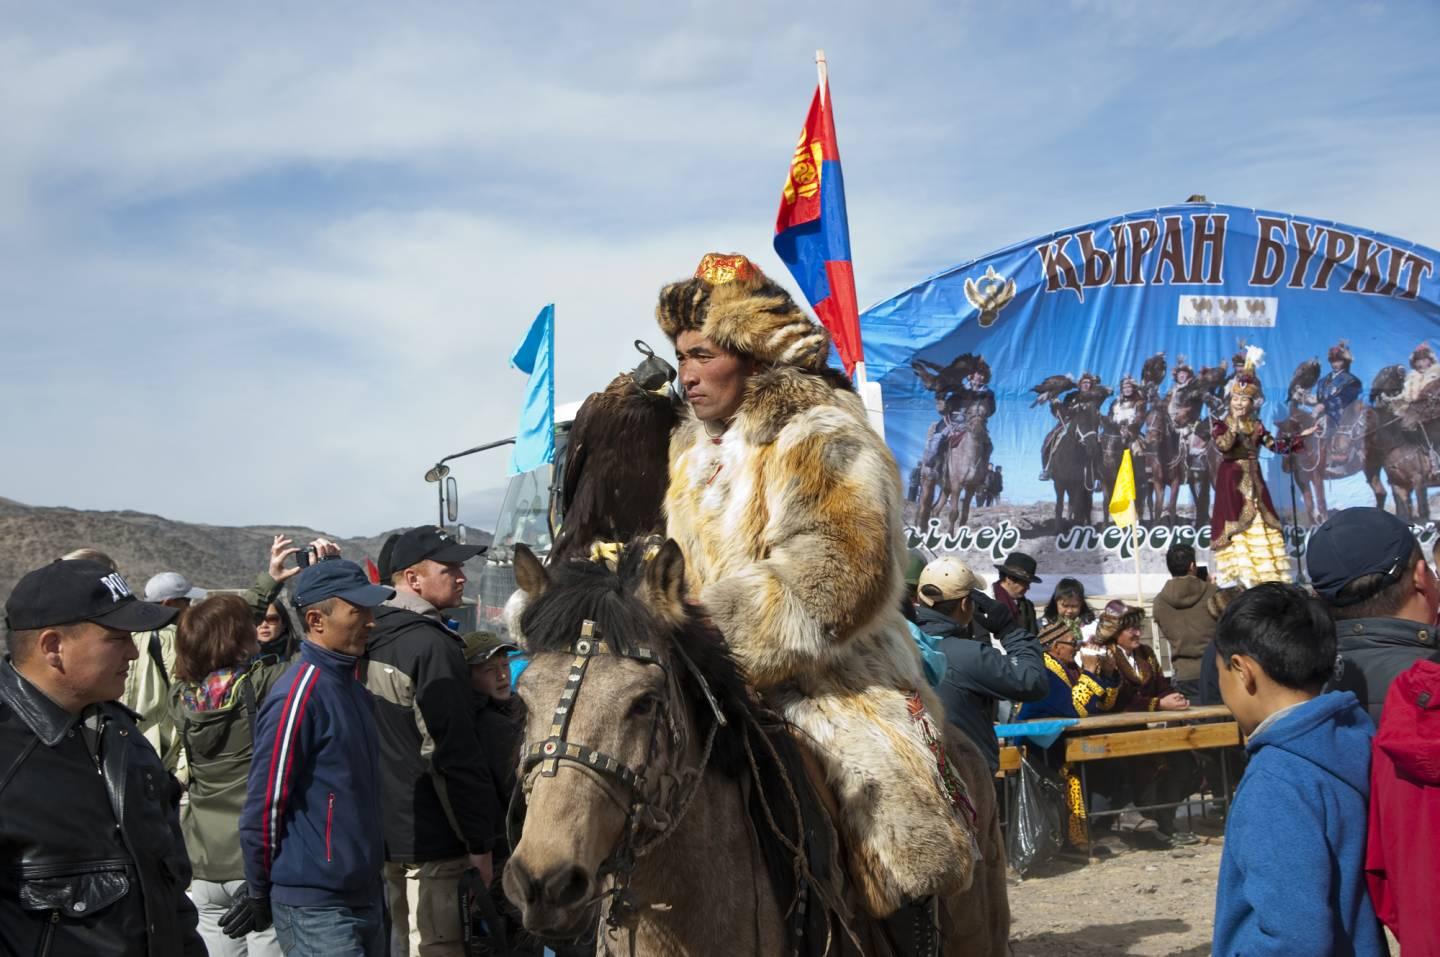 Lindsay Interview | Sophie Howarth Captures Mongolia's Golden Eagle Festival